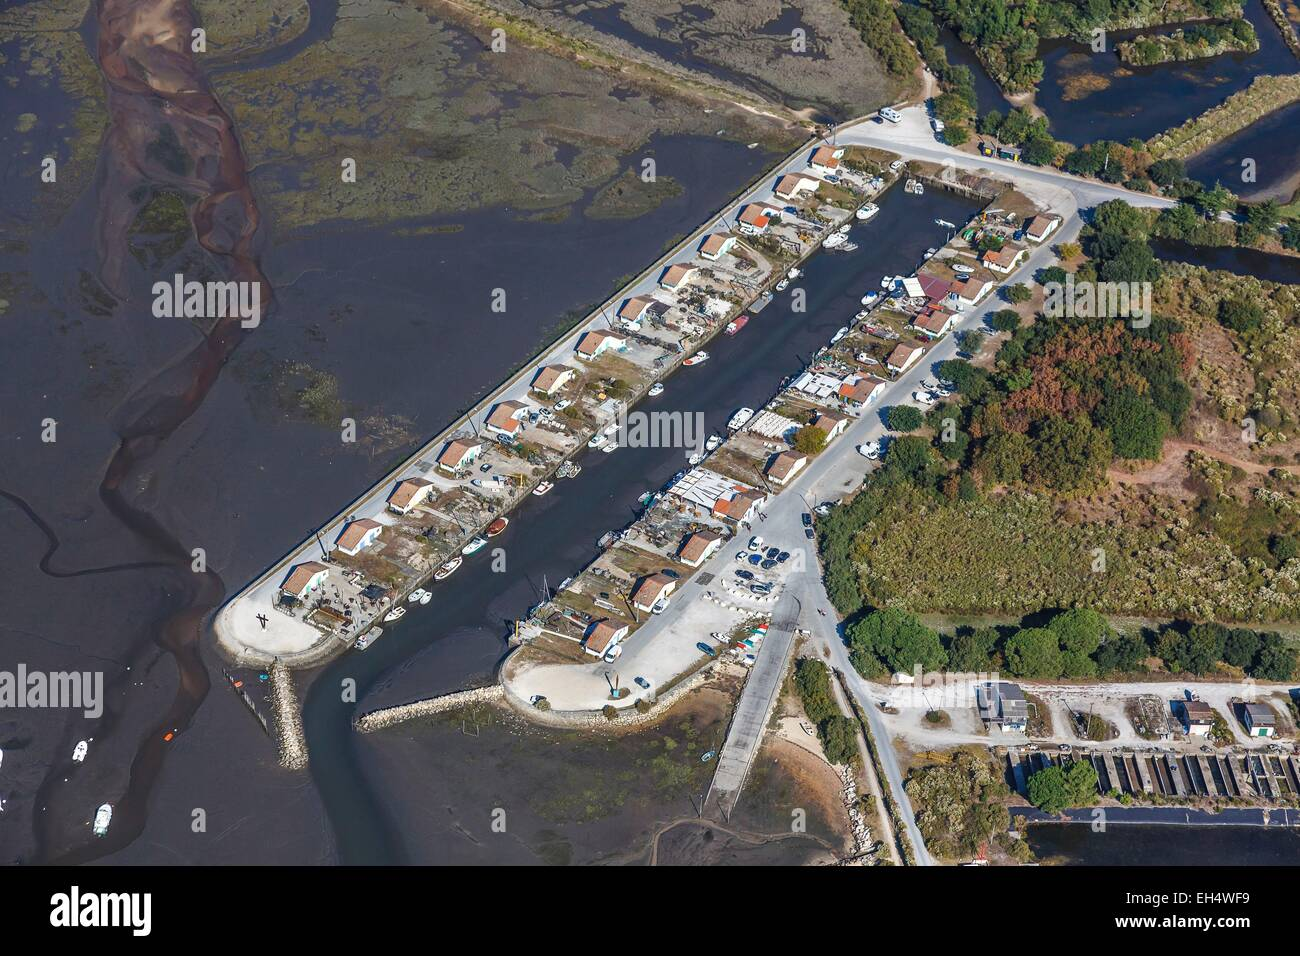 France, Gironde, Ares, oyster farming port on the Bassin d'Arcachon (aerial view) - Stock Image